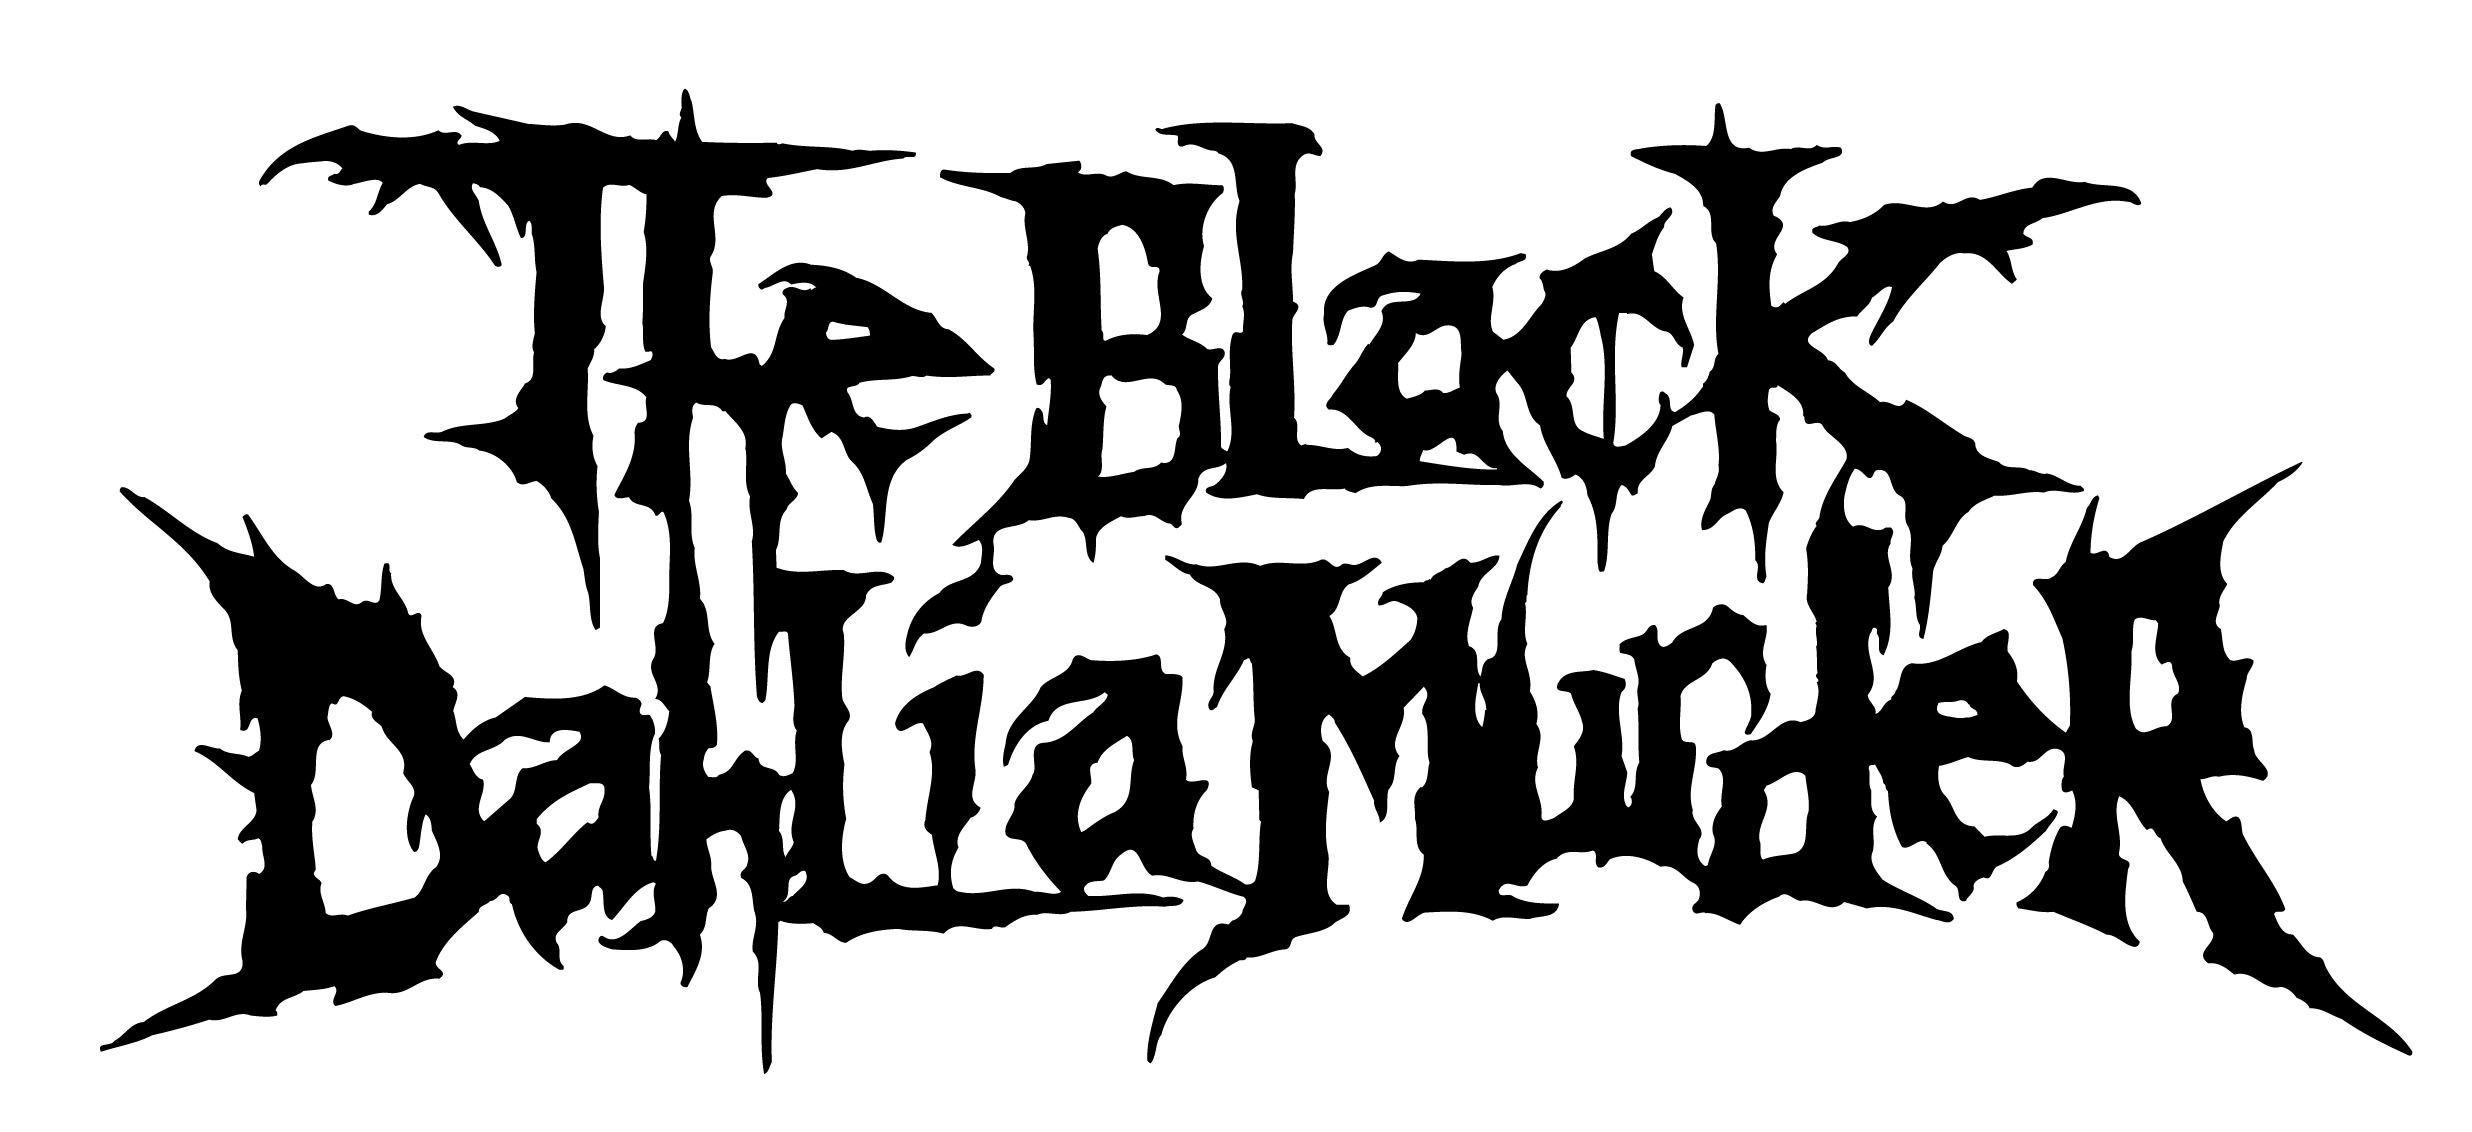 http://thmag.us/The%20Black%20Dahlia%20Murder%20-%20Logo.jpg